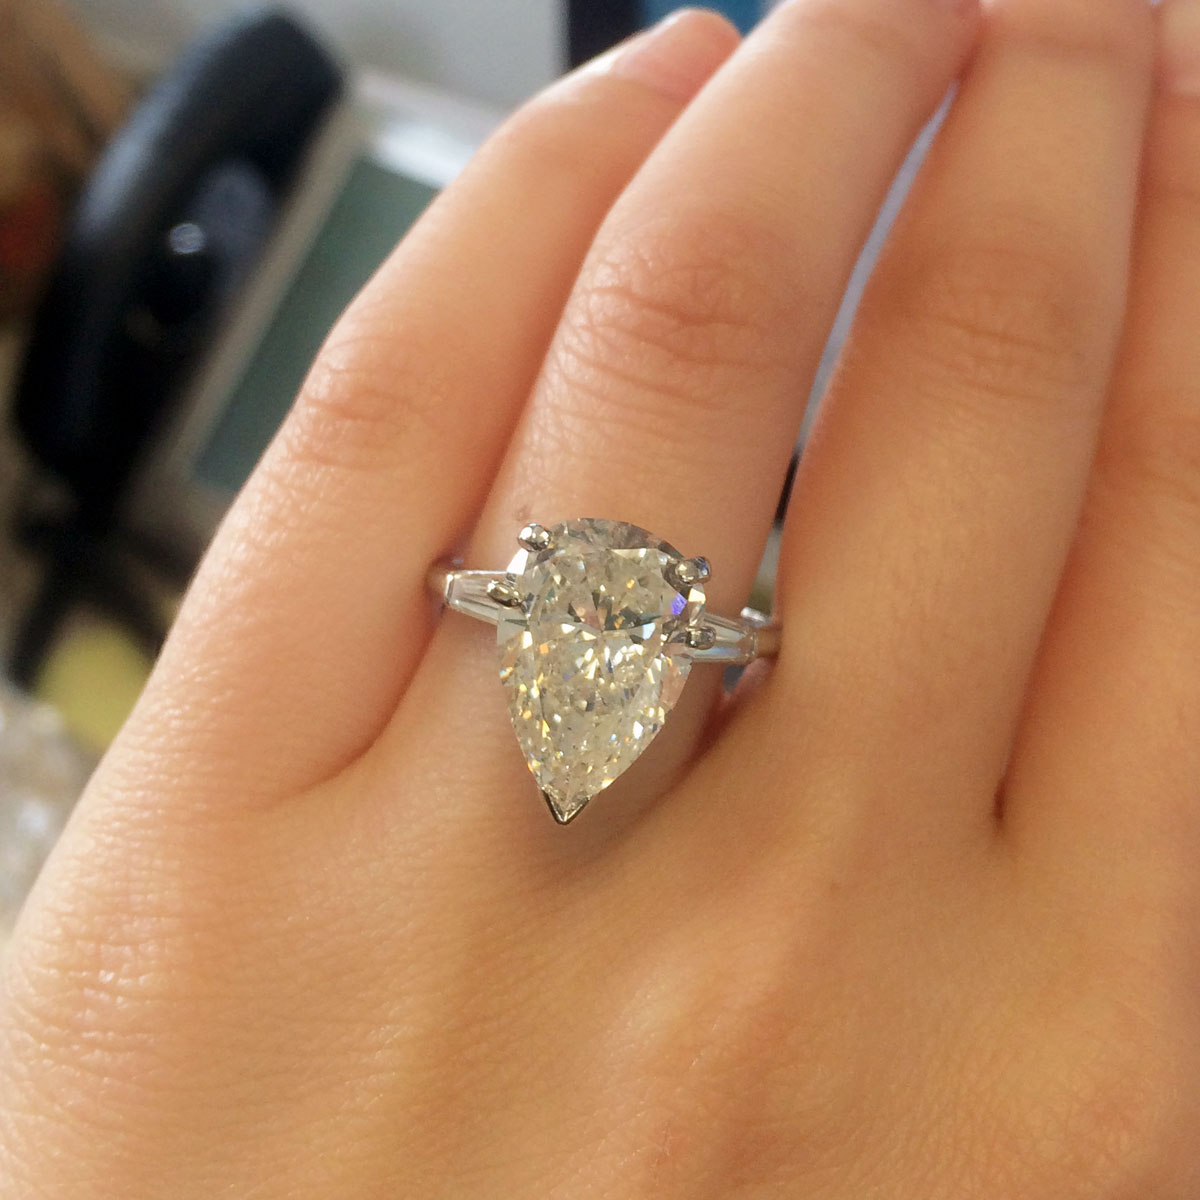 Pear Shape Diamond Engagement Ring Zoom + Start Slideshowstop  Slideshow